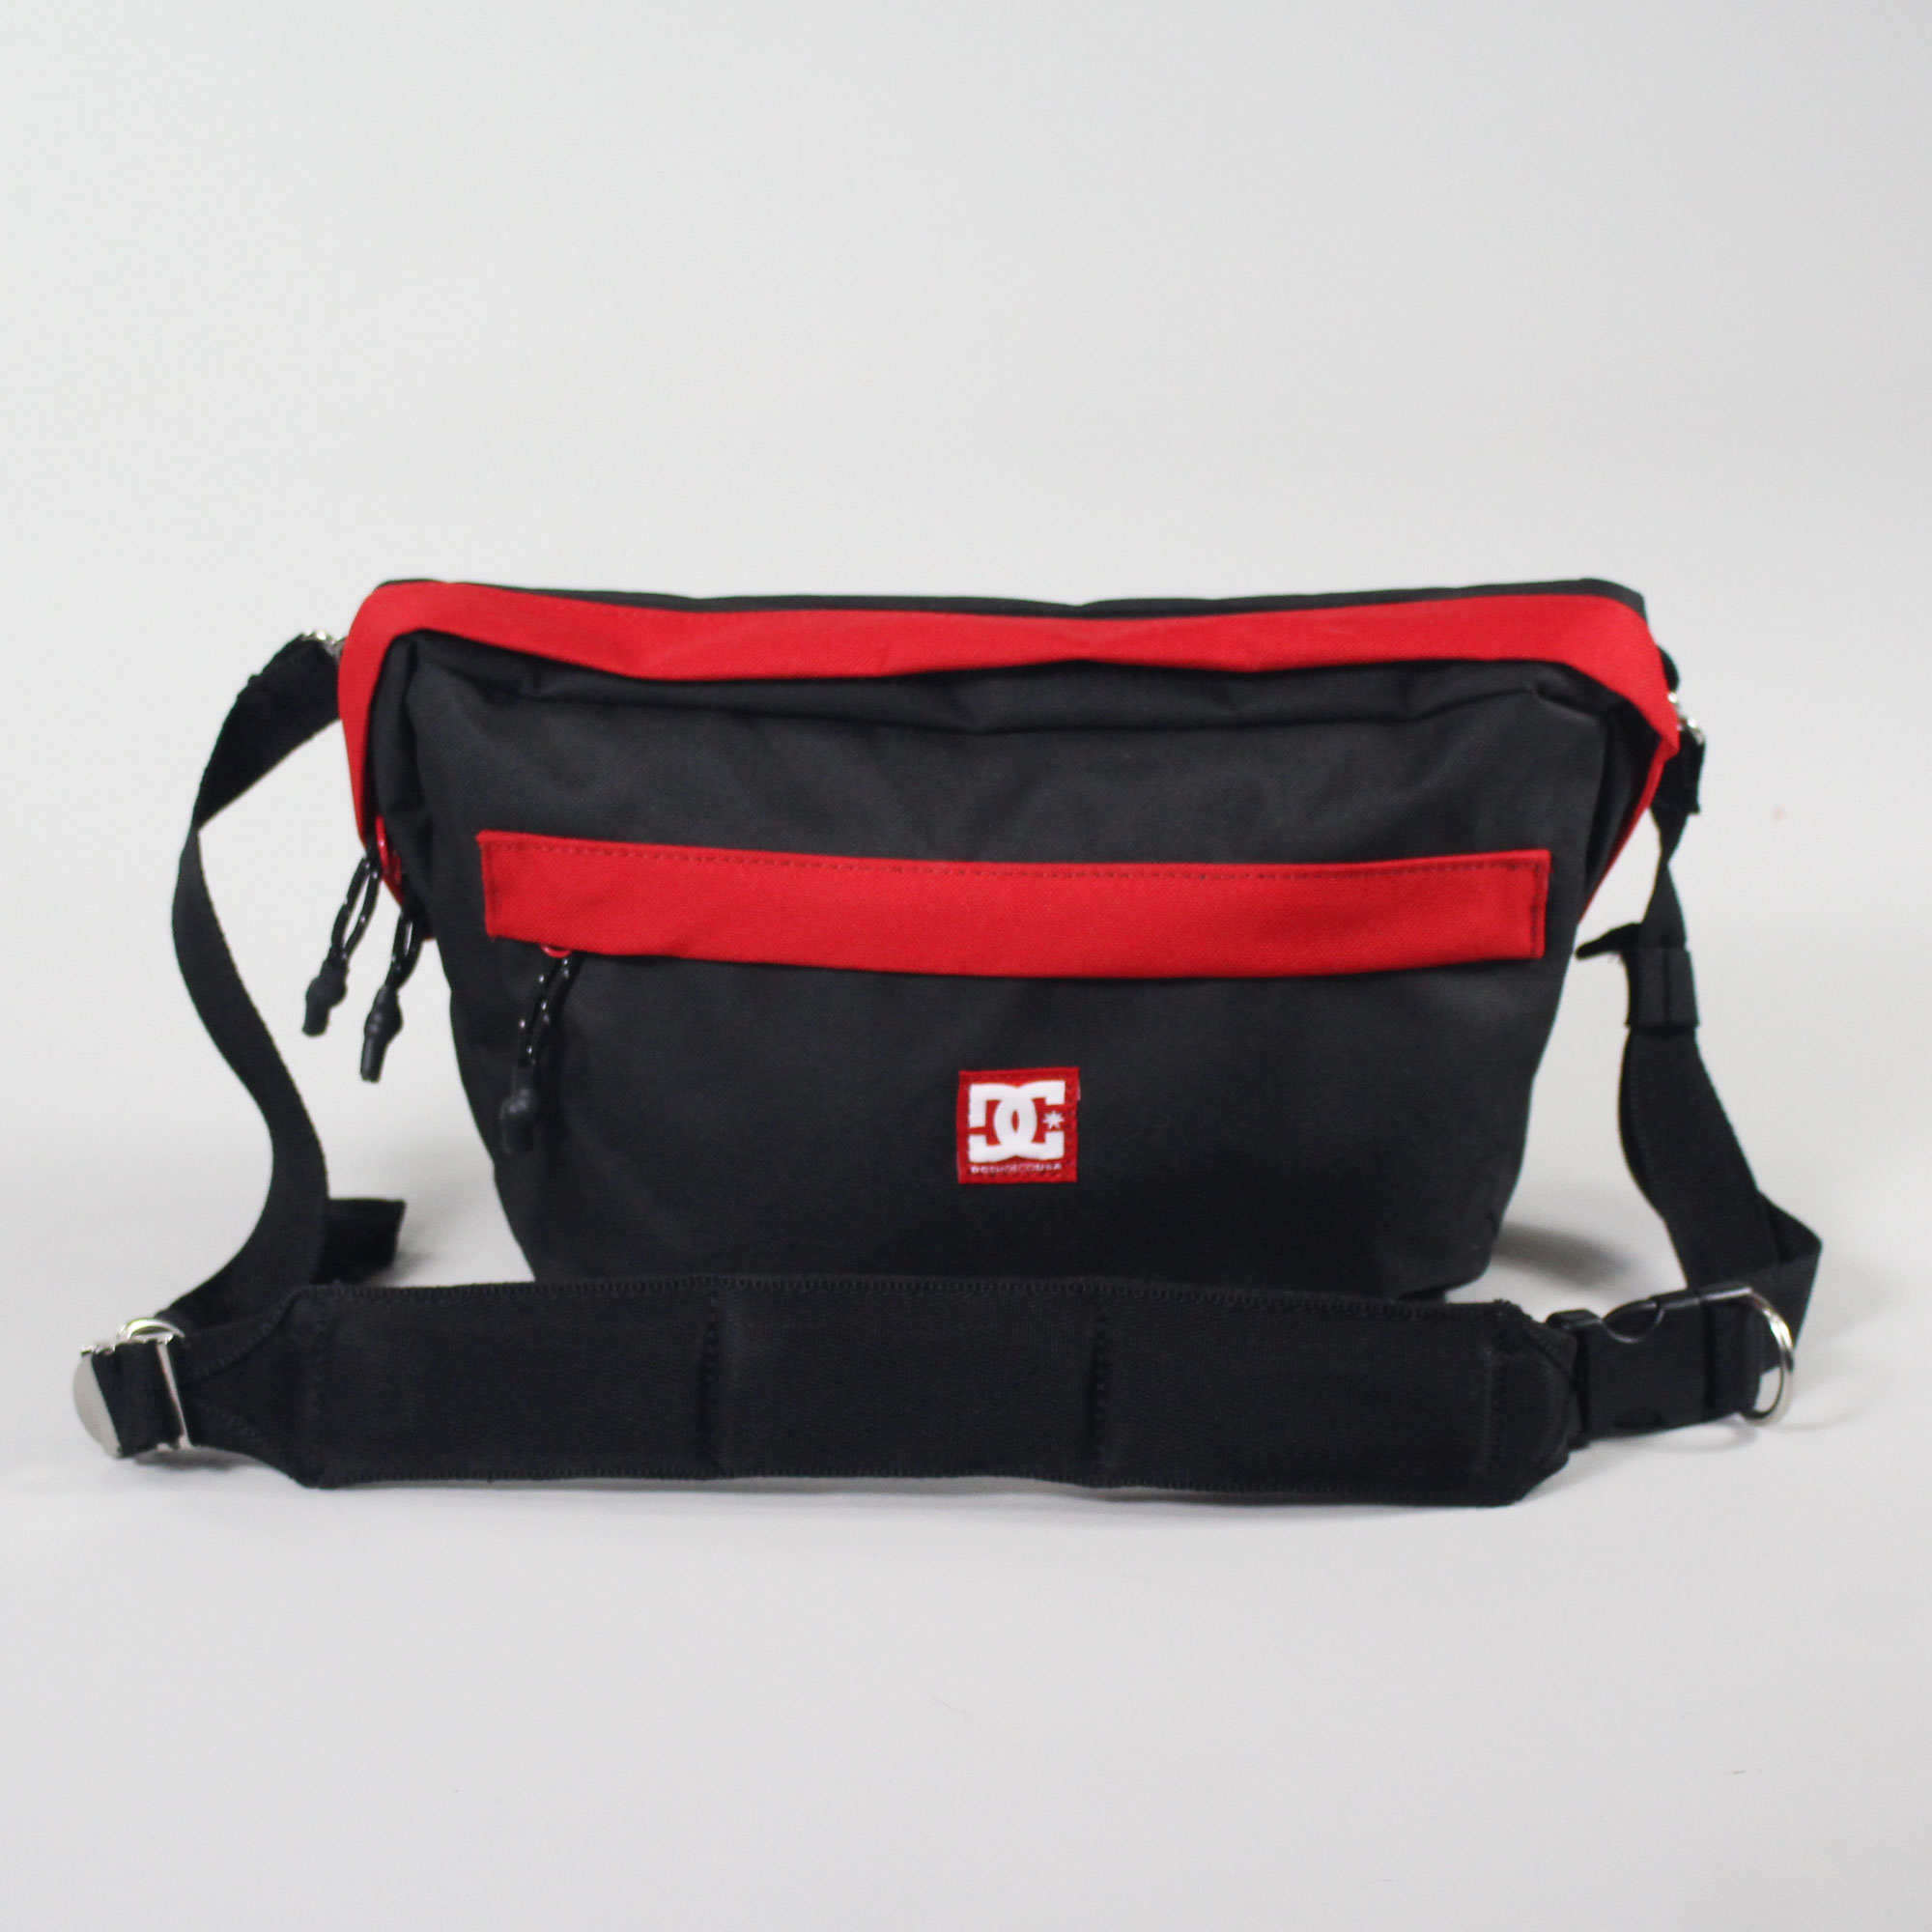 Pochete Dc Bag Hatchel